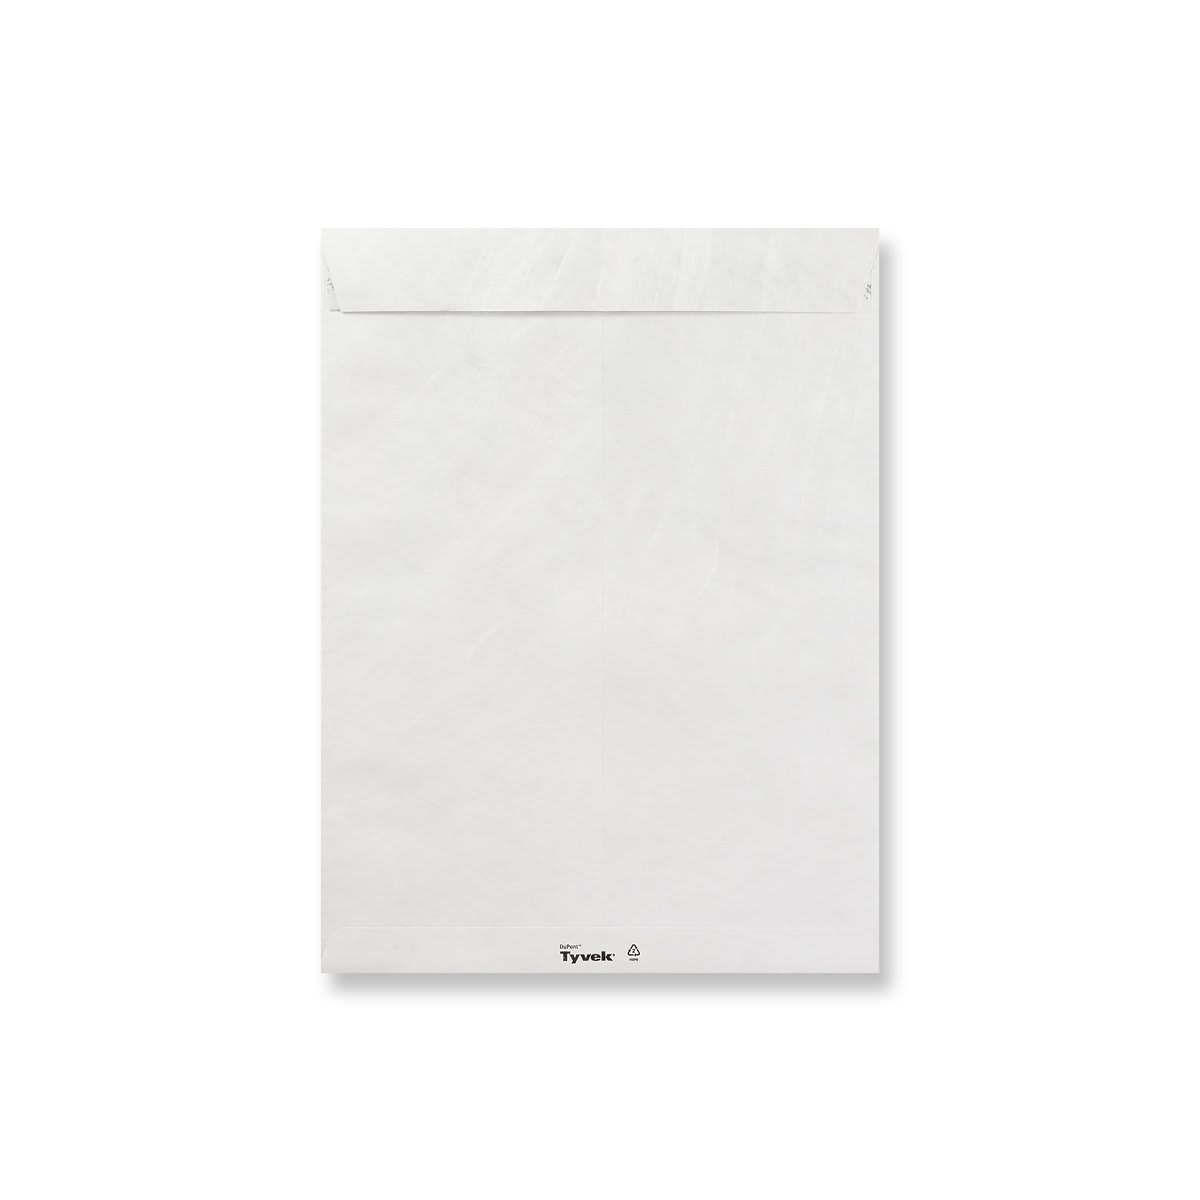 330 x 250mm WHITE TYVEK ENVELOPES